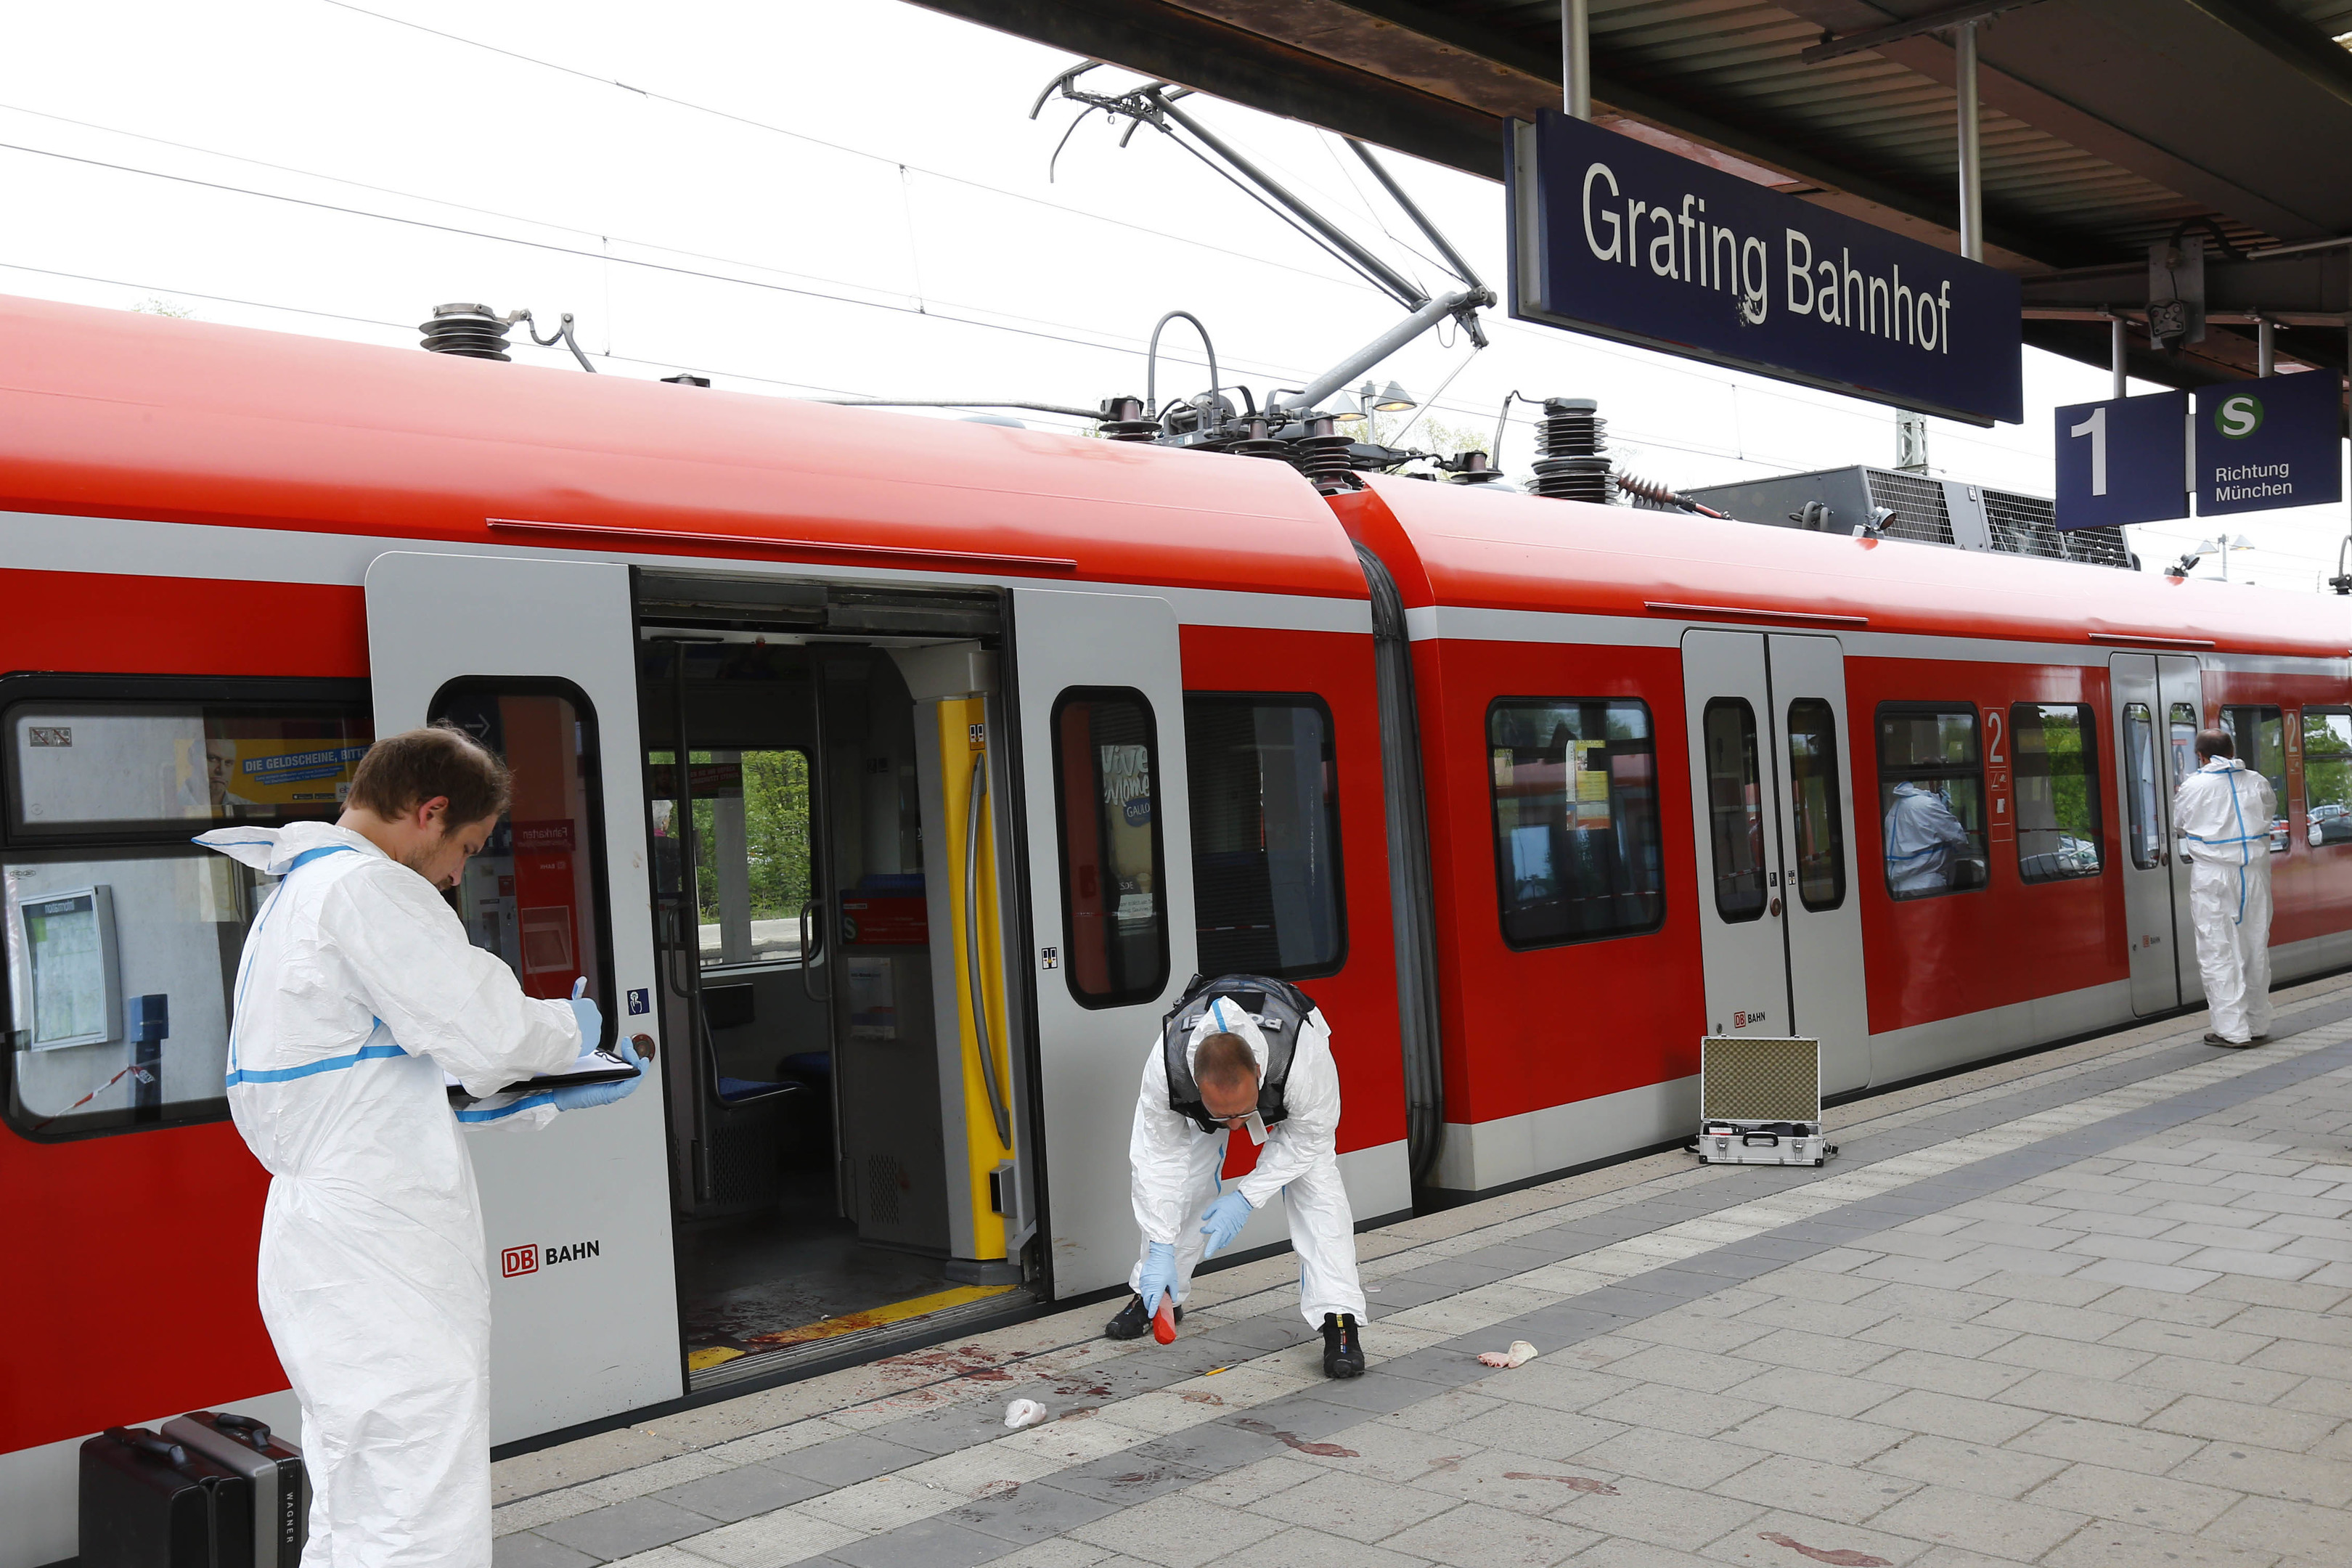 Police investigate the scene of a stabbing at a station in Grafing near Munich (AP Photo/Matthias Schrader)